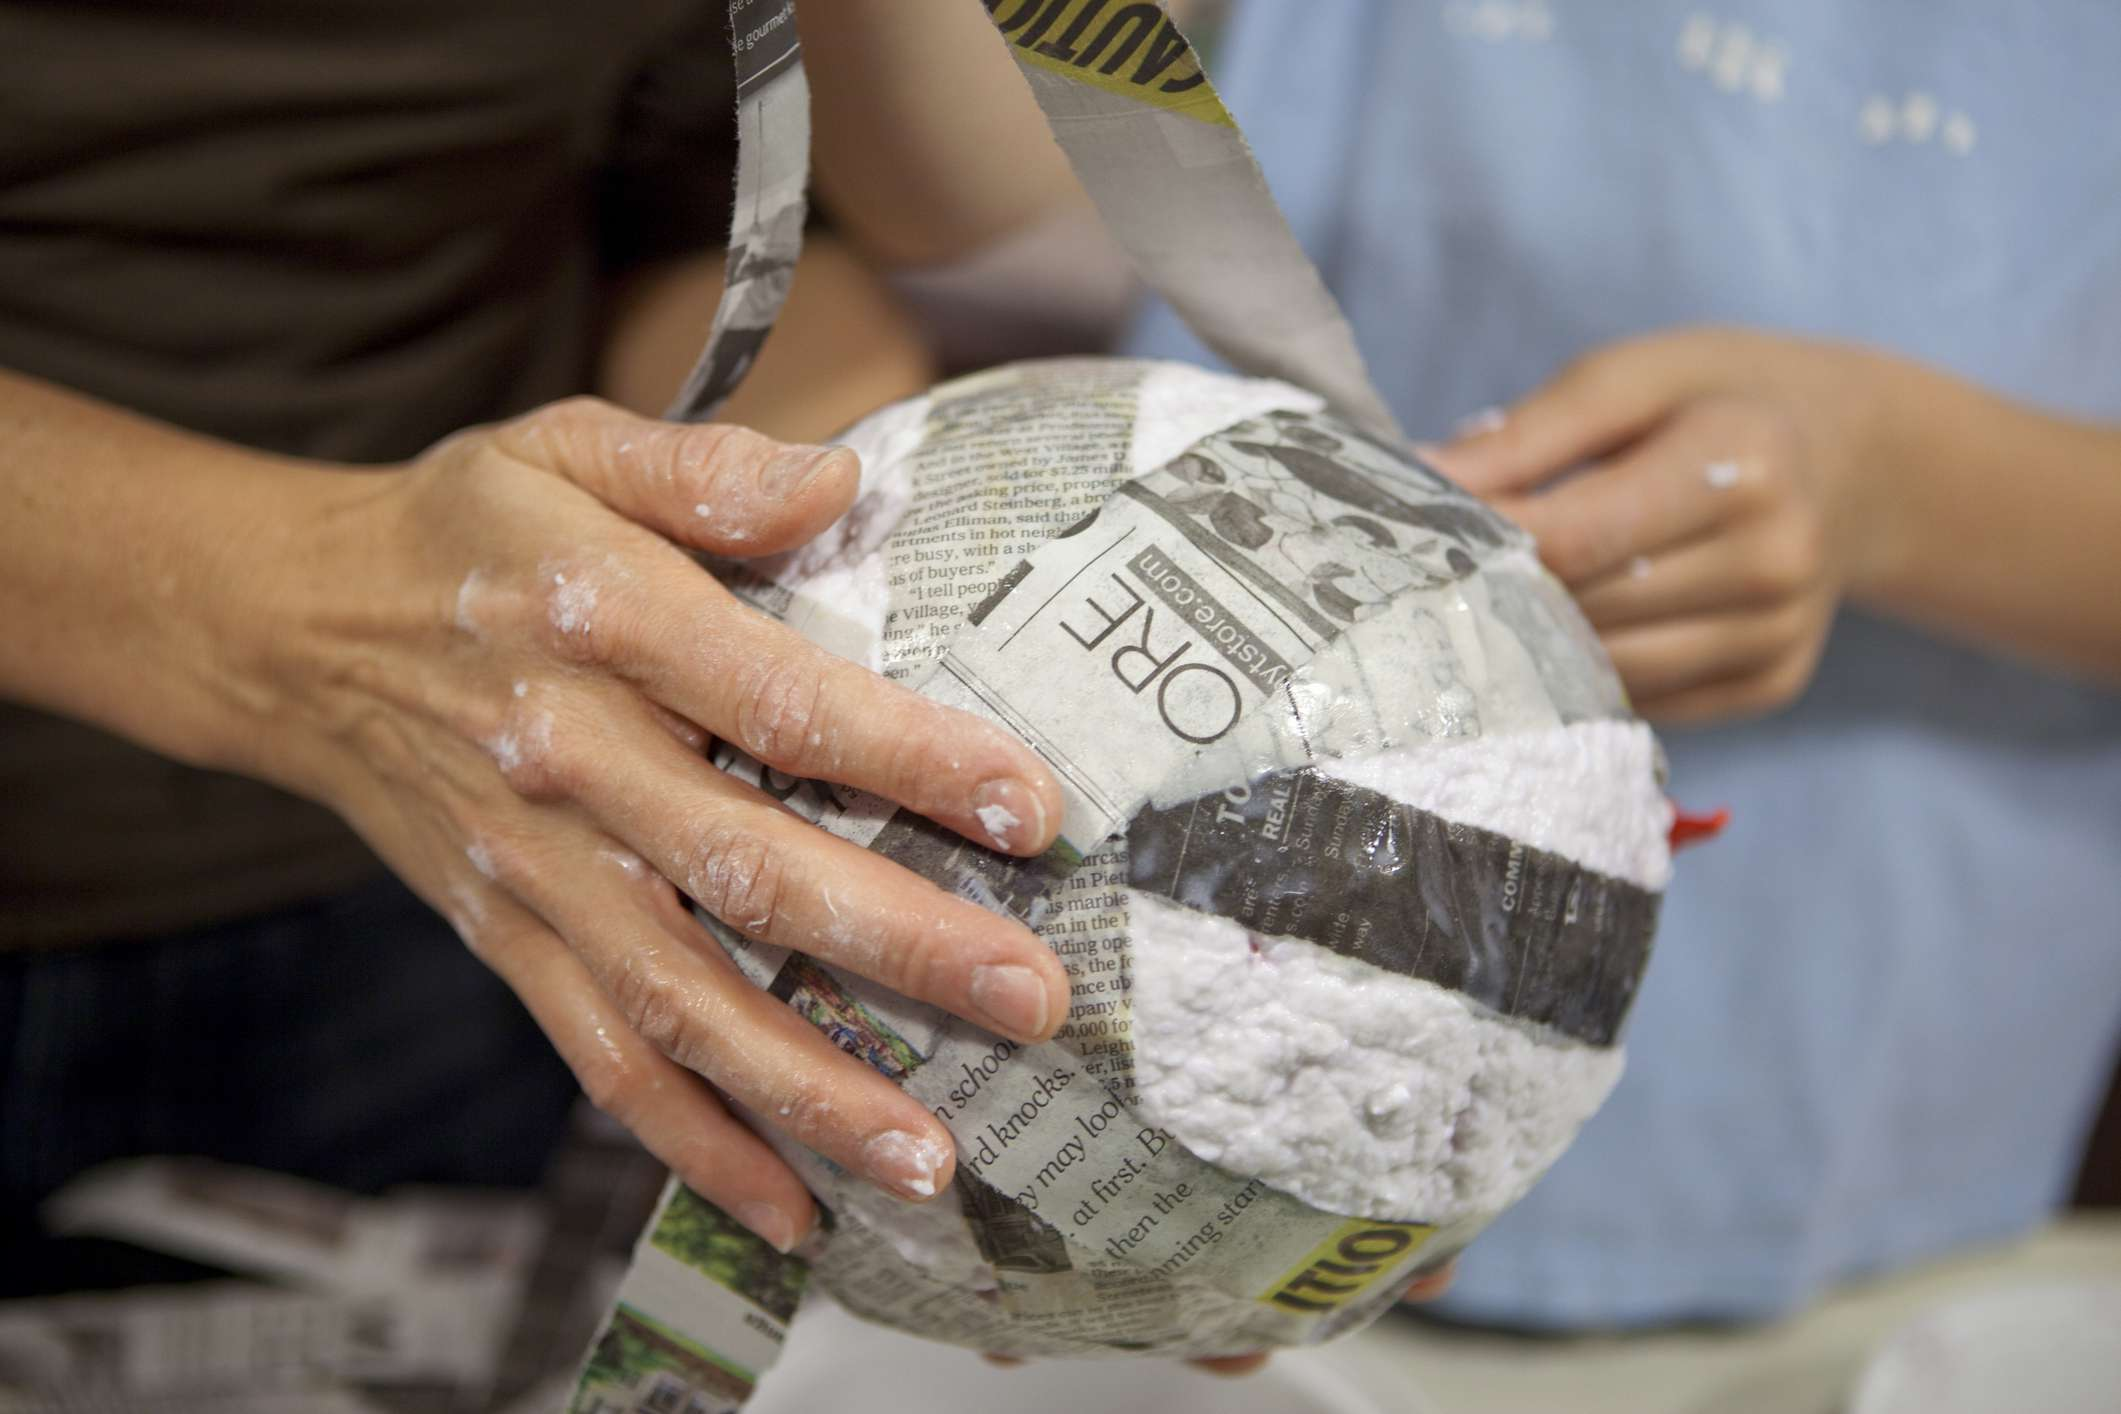 A parent and their child making a paper mache ball